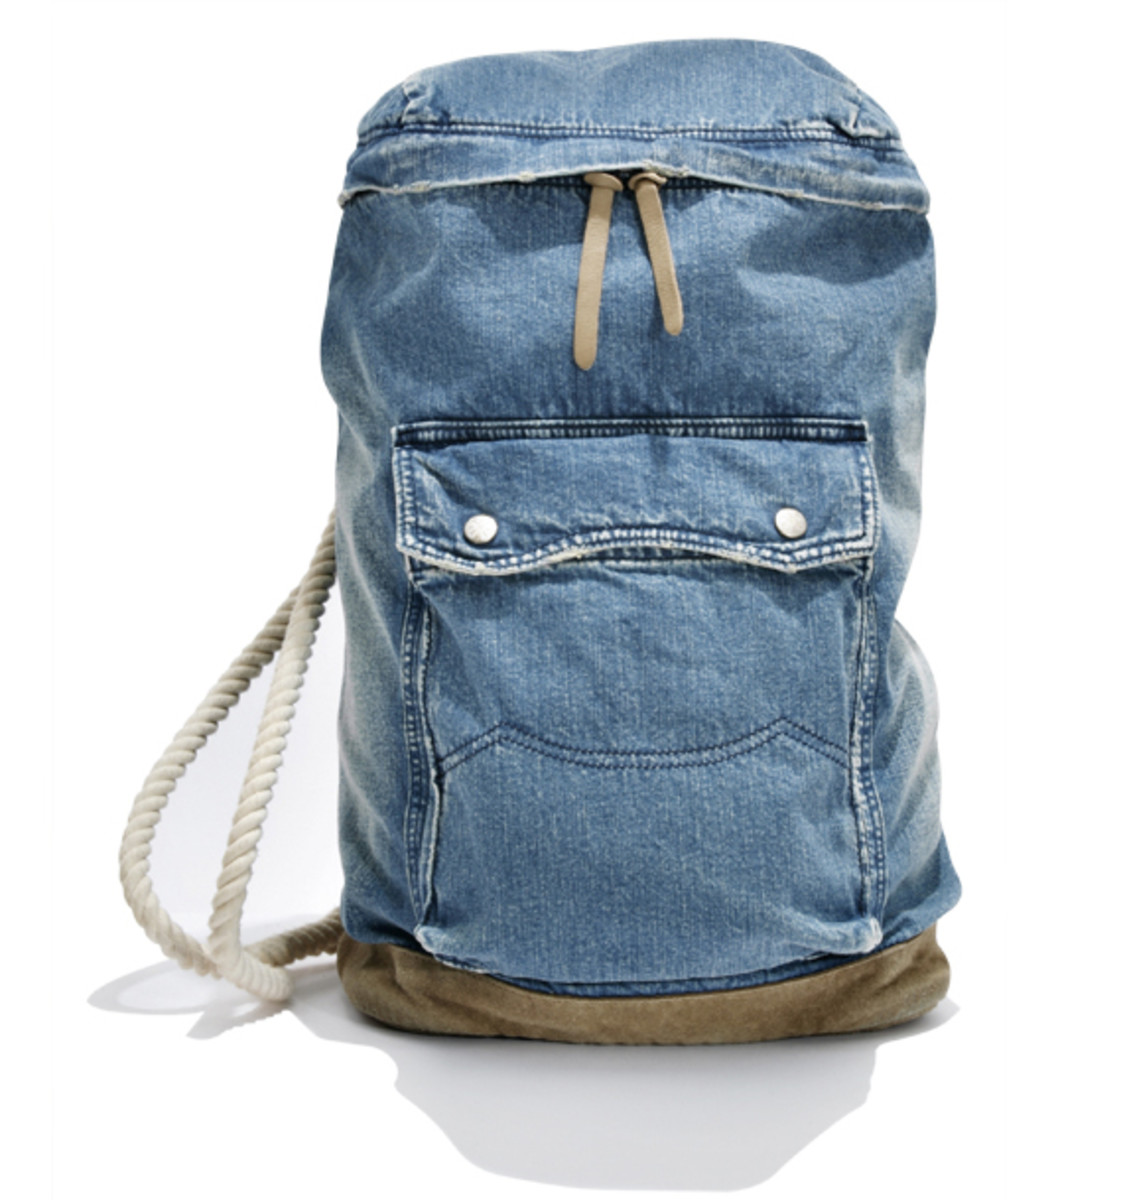 white-mountaineering-porter-used-denim-accessories-01